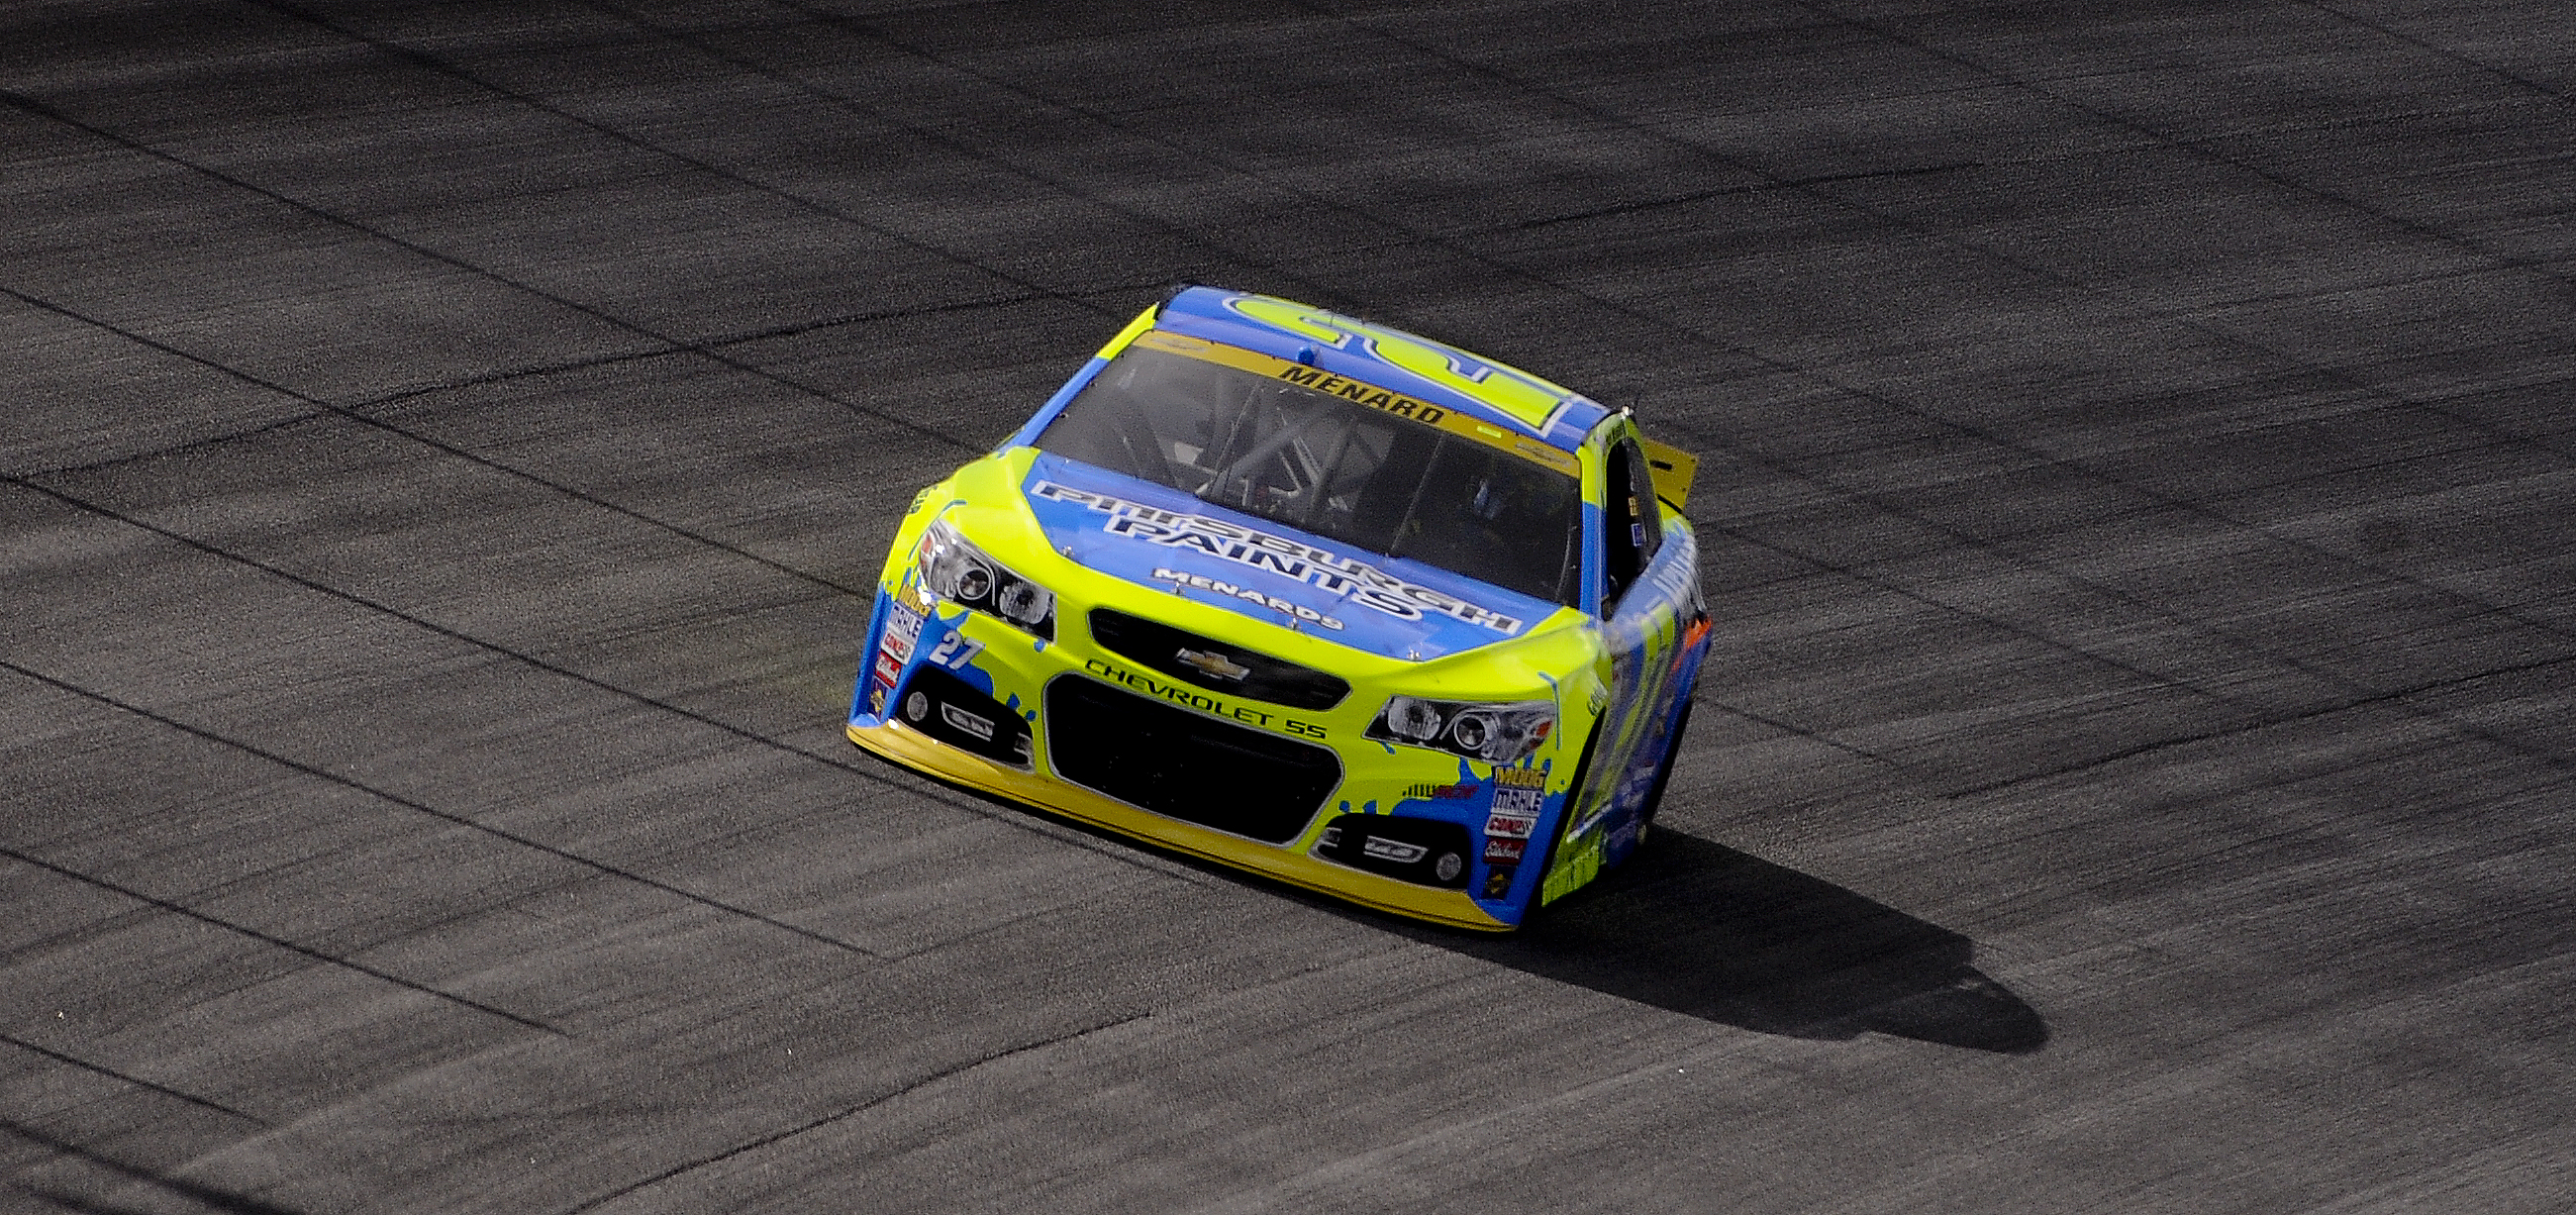 Paul Menard drives his car during practice for the NASCAR Sprint Cup Series auto race at Chicagoland Speedway, Saturday, Sept. 19, 2015, in Joliet, Ill. (AP Photo/Matt Marton)